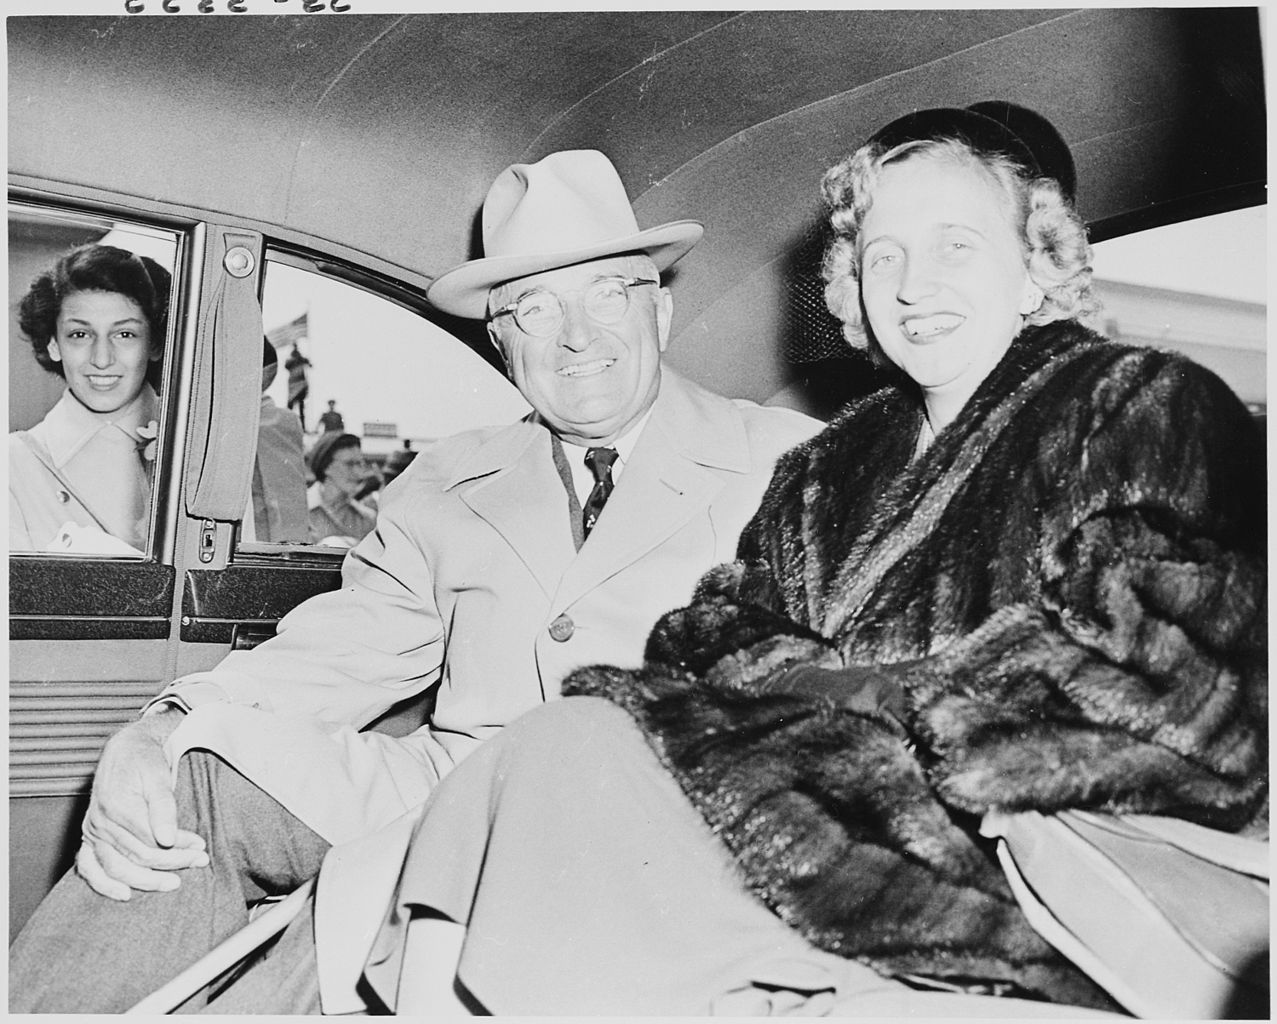 https://commons.wikimedia.org/wiki/File:Photograph_of_President_Truman_and_his_daughter_Margaret_Truman_in_the_back_of_their_limousine,_upon_their_return..._-_NARA_-_200211.jpg